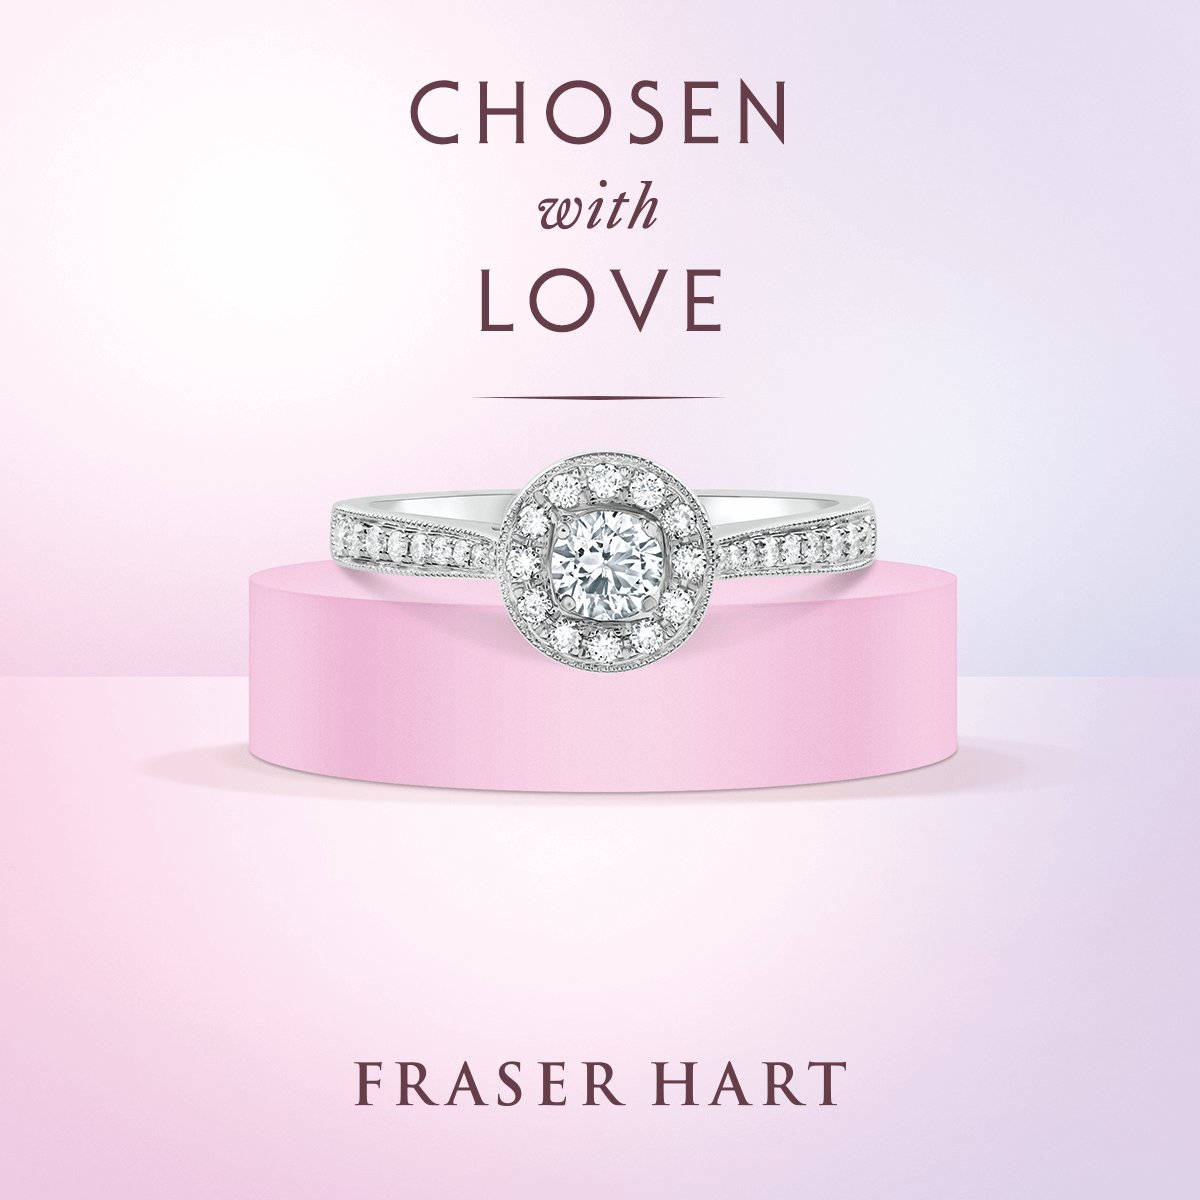 chosenwithlove hashtag on Twitter